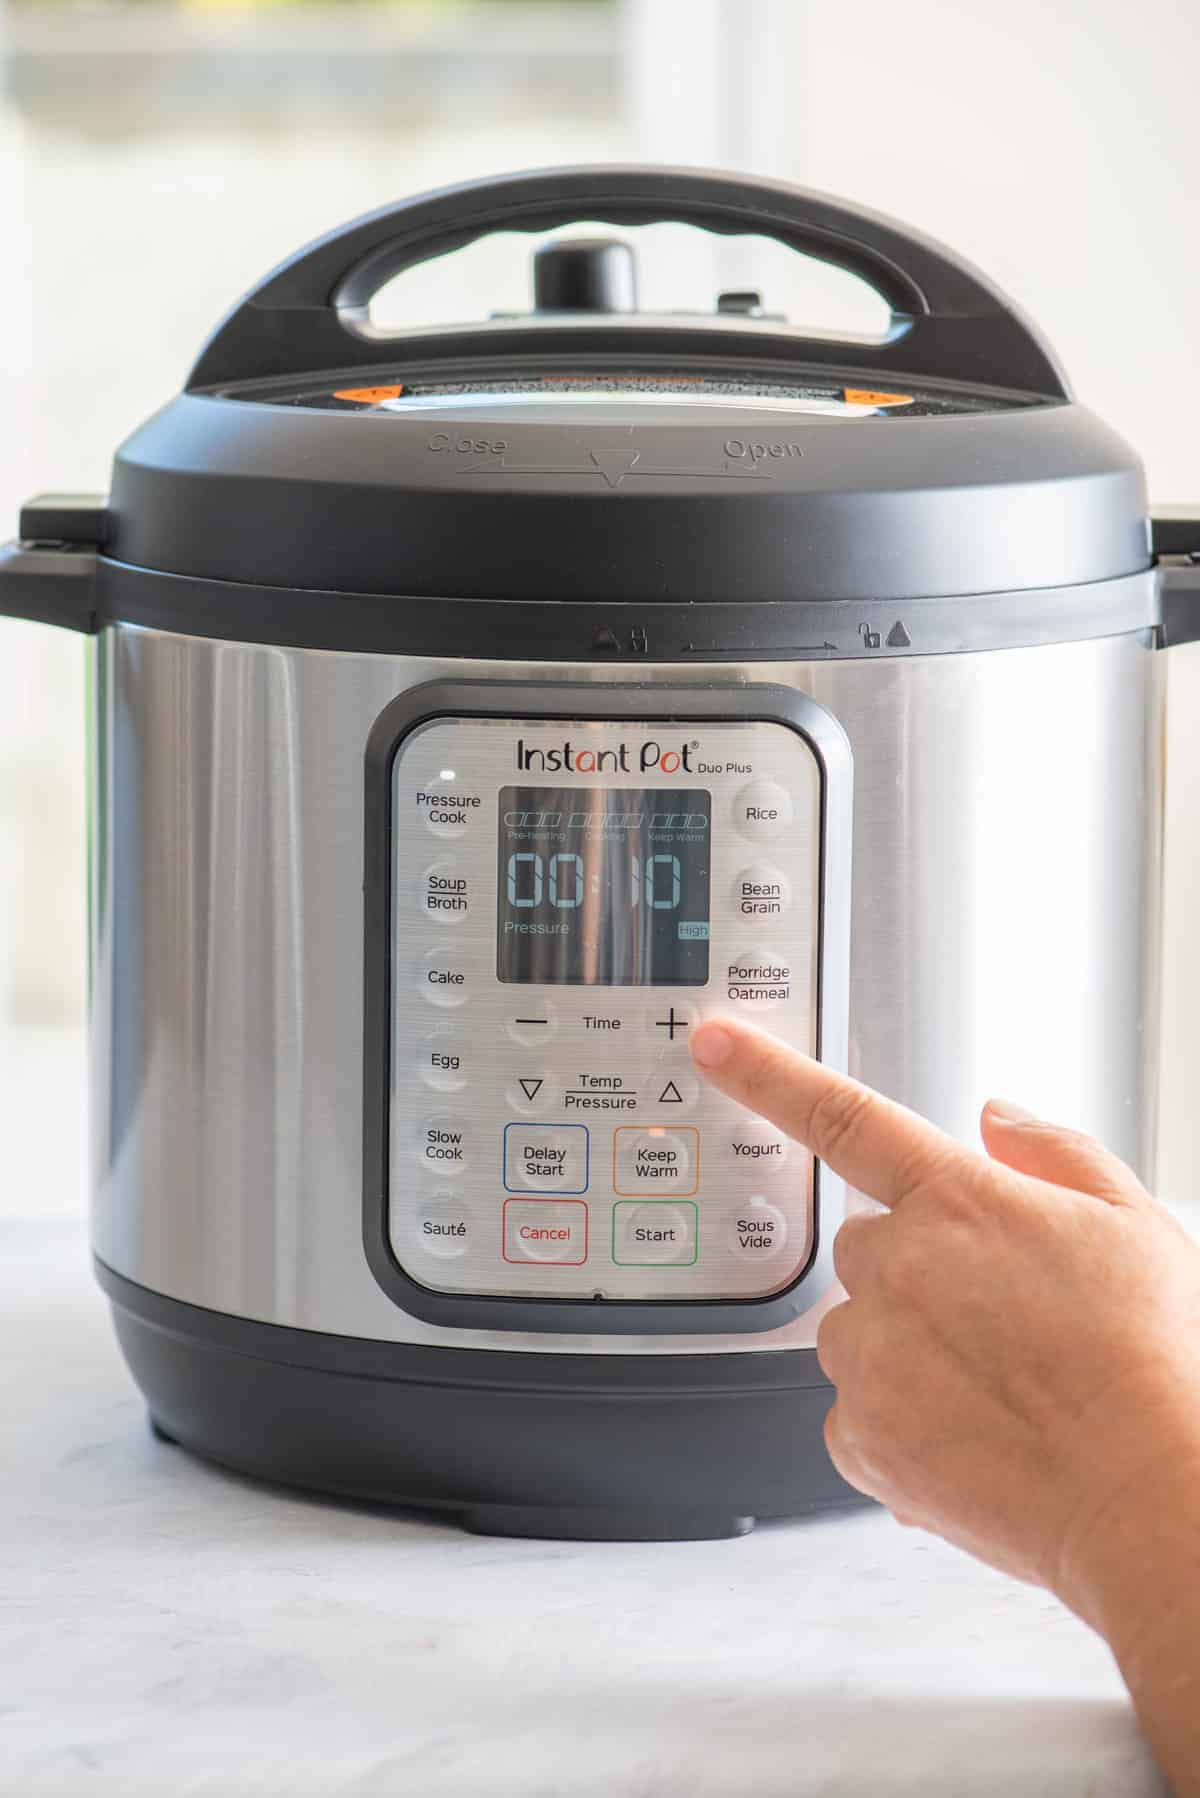 Showing timer on instant pot